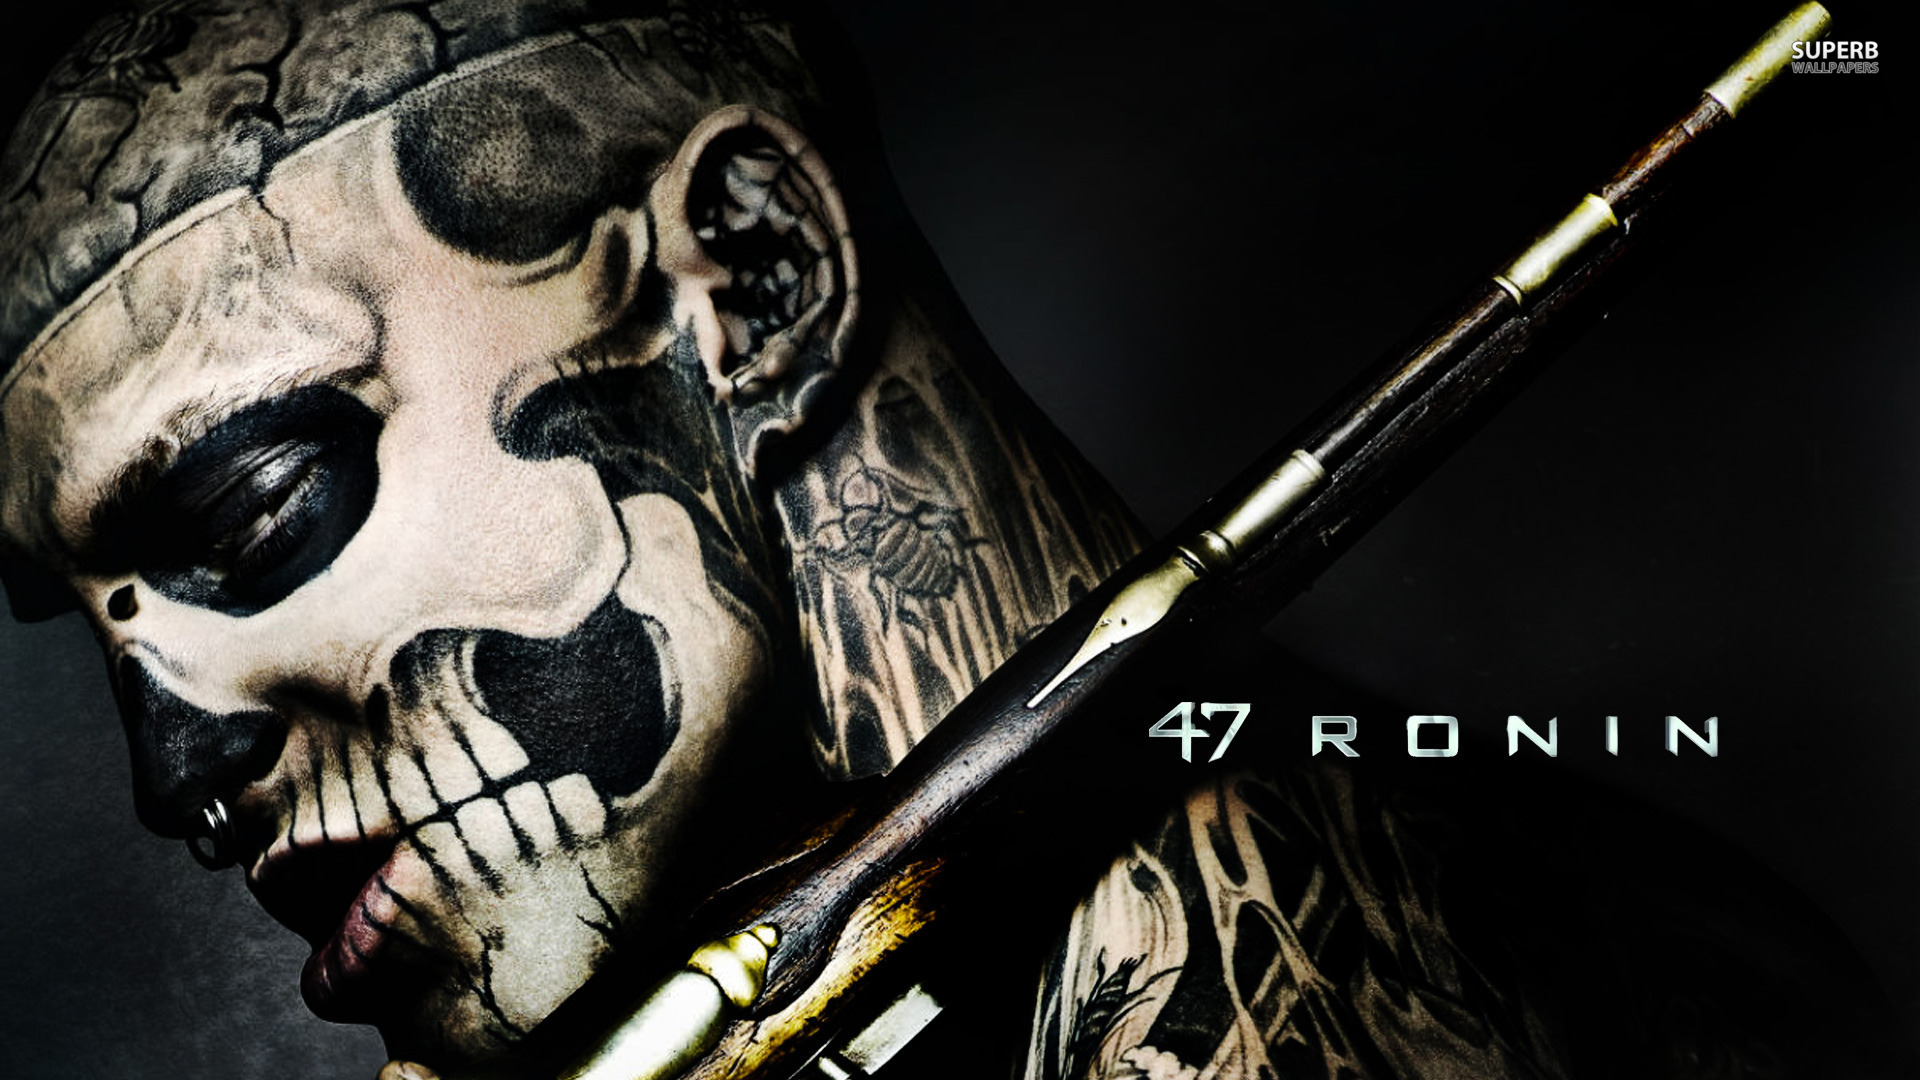 This character features heavily in the marketing for 47 Ronin, but is basically non-